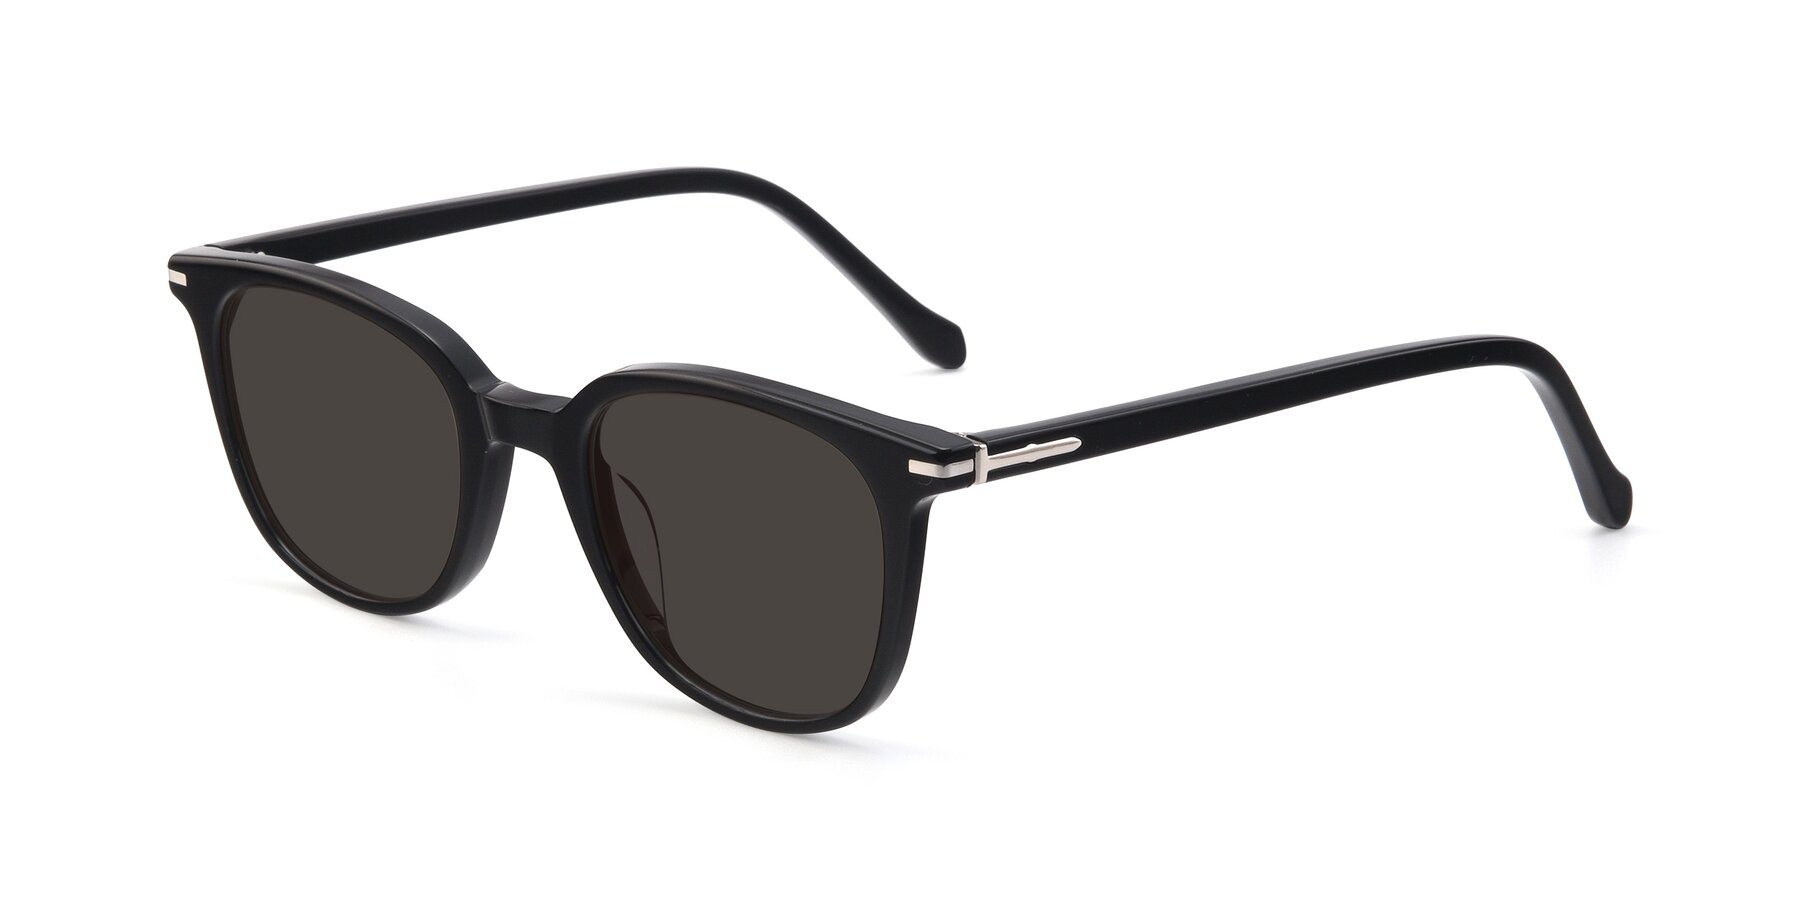 Angle of 17562 in Black with Gray Tinted Lenses